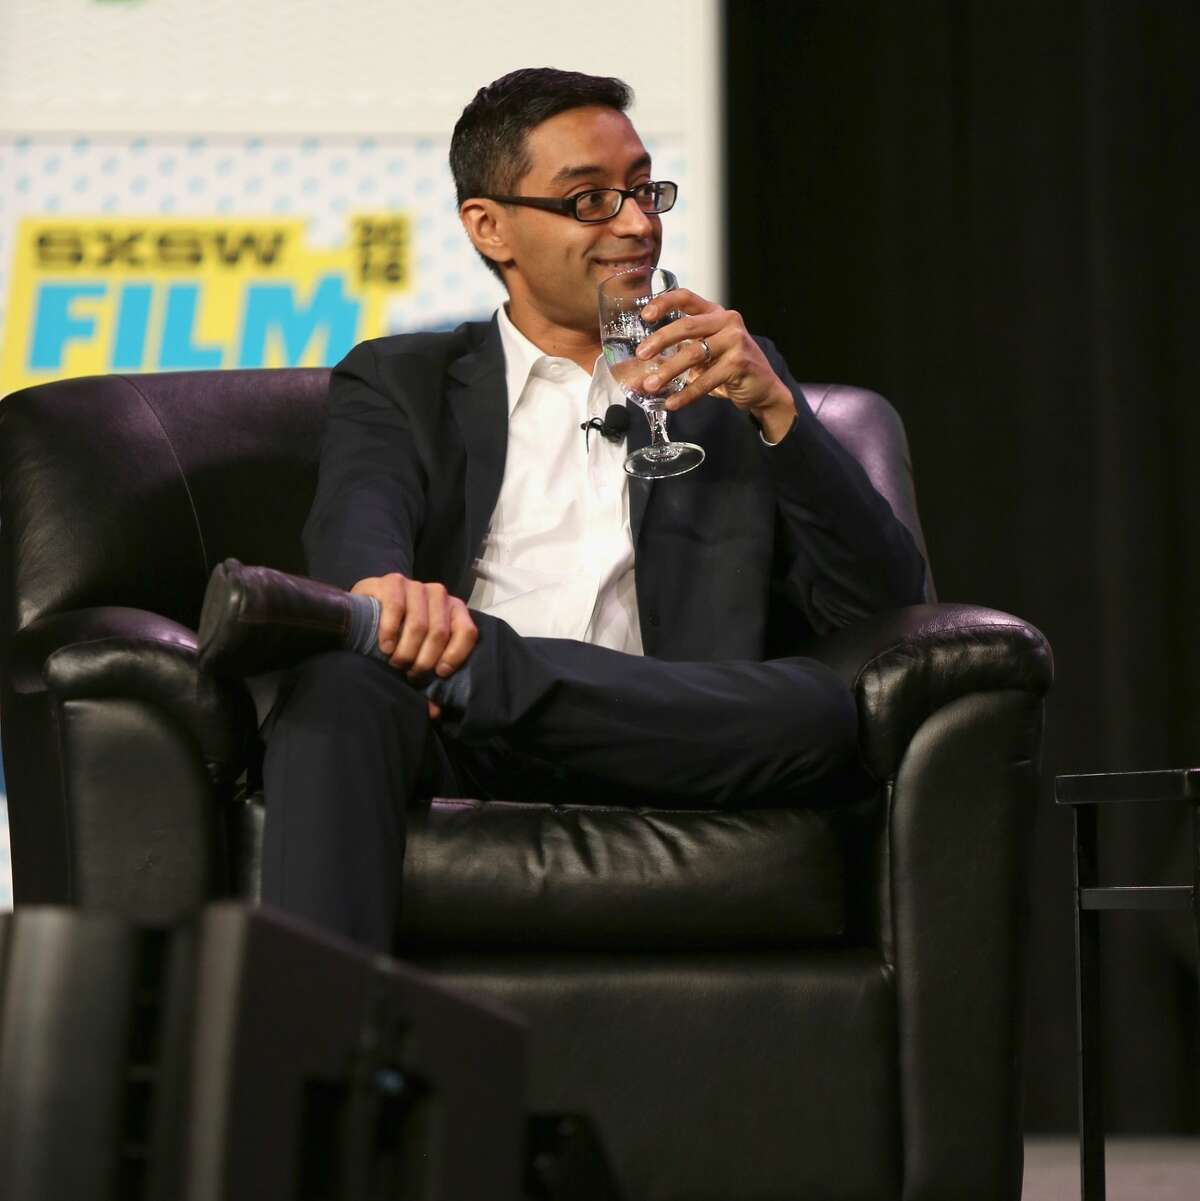 AUSTIN, TX - MARCH 15: Farhad Manjoo, columnist at The New York Times speaks onstage at 'Stewart Butterfield in Conversation with Farhad Manjoo' during the 2016 SXSW Music, Film + Interactive Festival at Austin Convention Center on March 15, 2016 in Austin, Texas. (Photo by Mindy Best/Getty Images for SXSW)